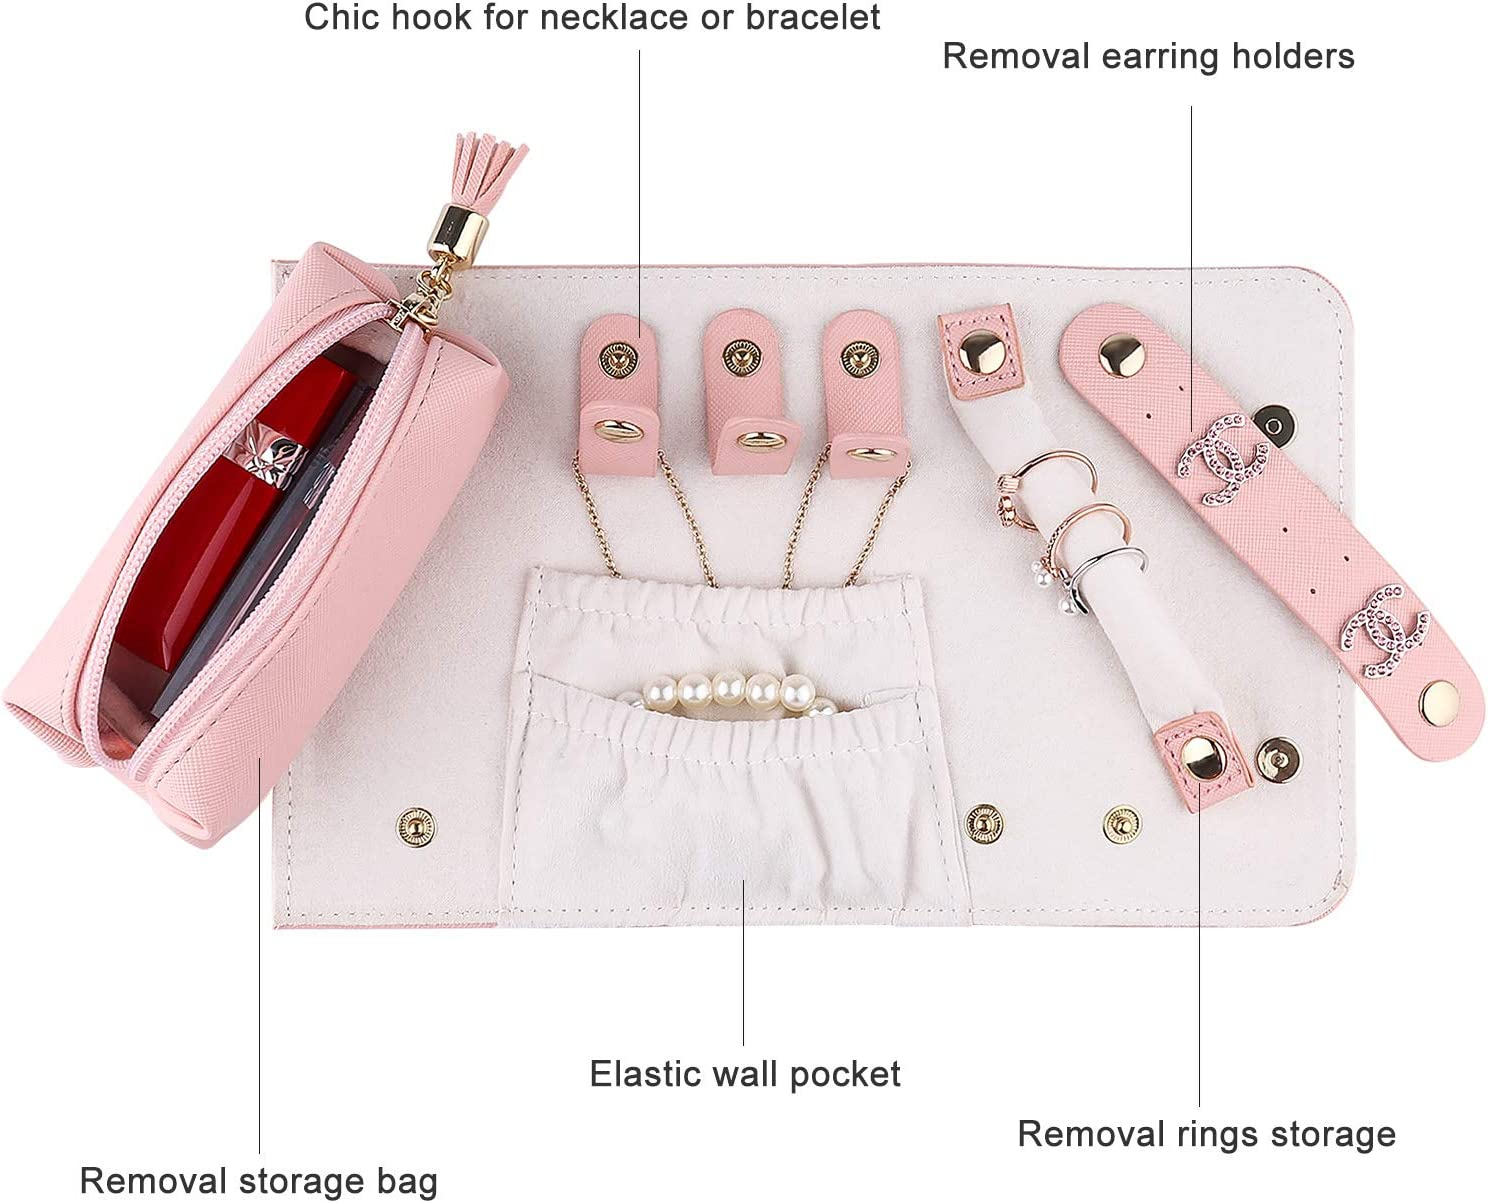 JIDUO Travel Jewelry Organizer Roll Foldable Faux Leather Small Jewelry Case Jewelry Storage Bag for Necklaces Earrings Bracelets Rings Brooches and More Easy to Carry Pink